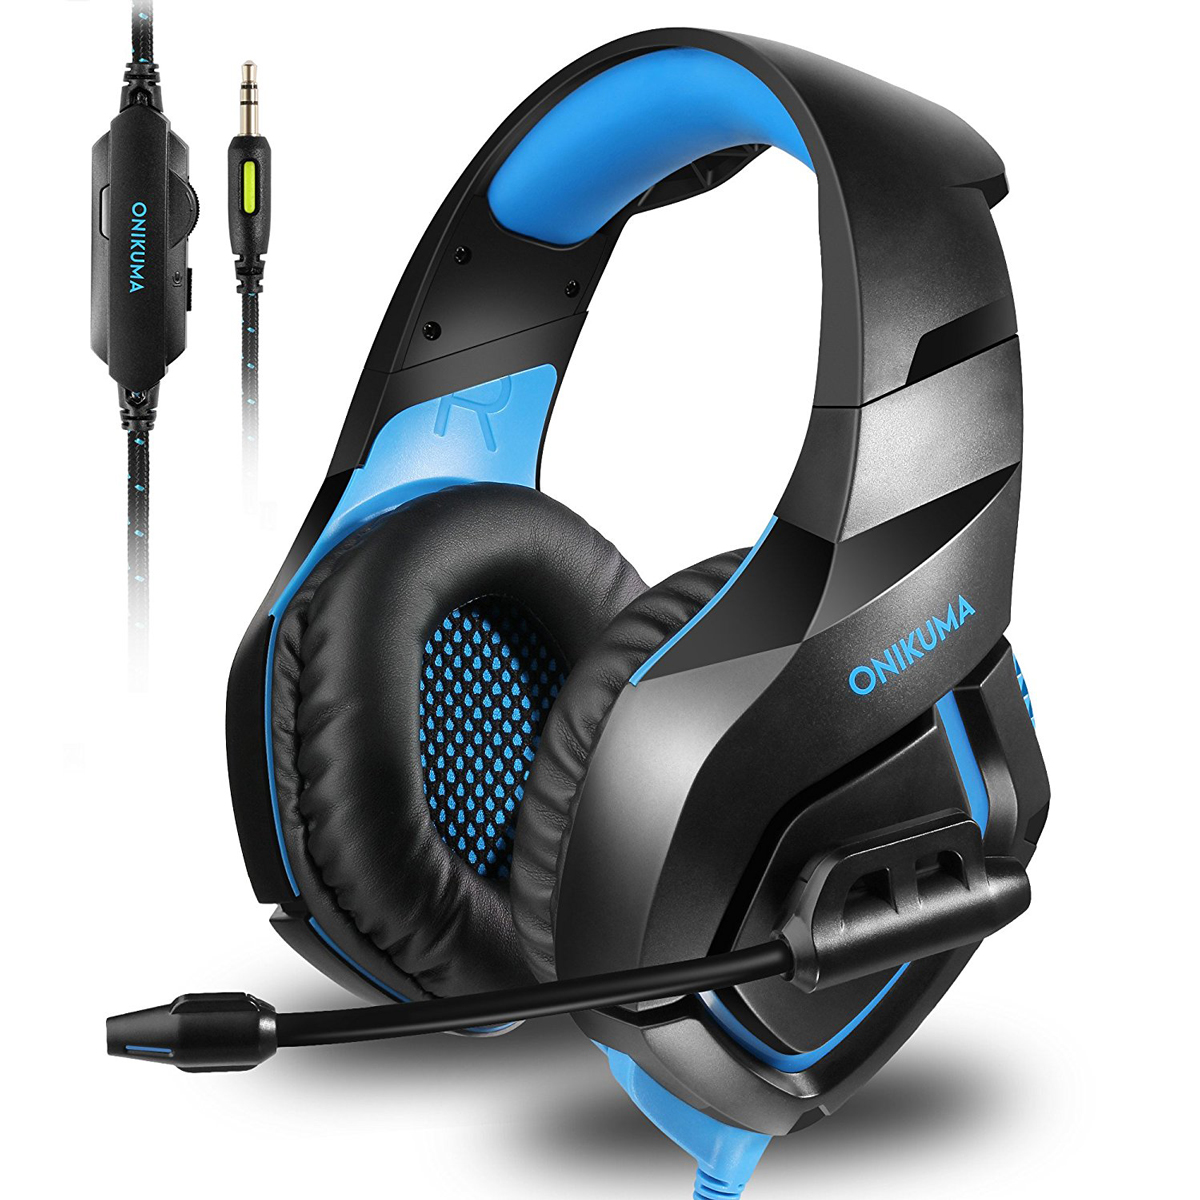 ONIKUMA Stereo Gaming Headset Over Ears Headset With Noise Canceling Microphone for PC, PS4, XBOX ONE, IPAD And Laptop Computer